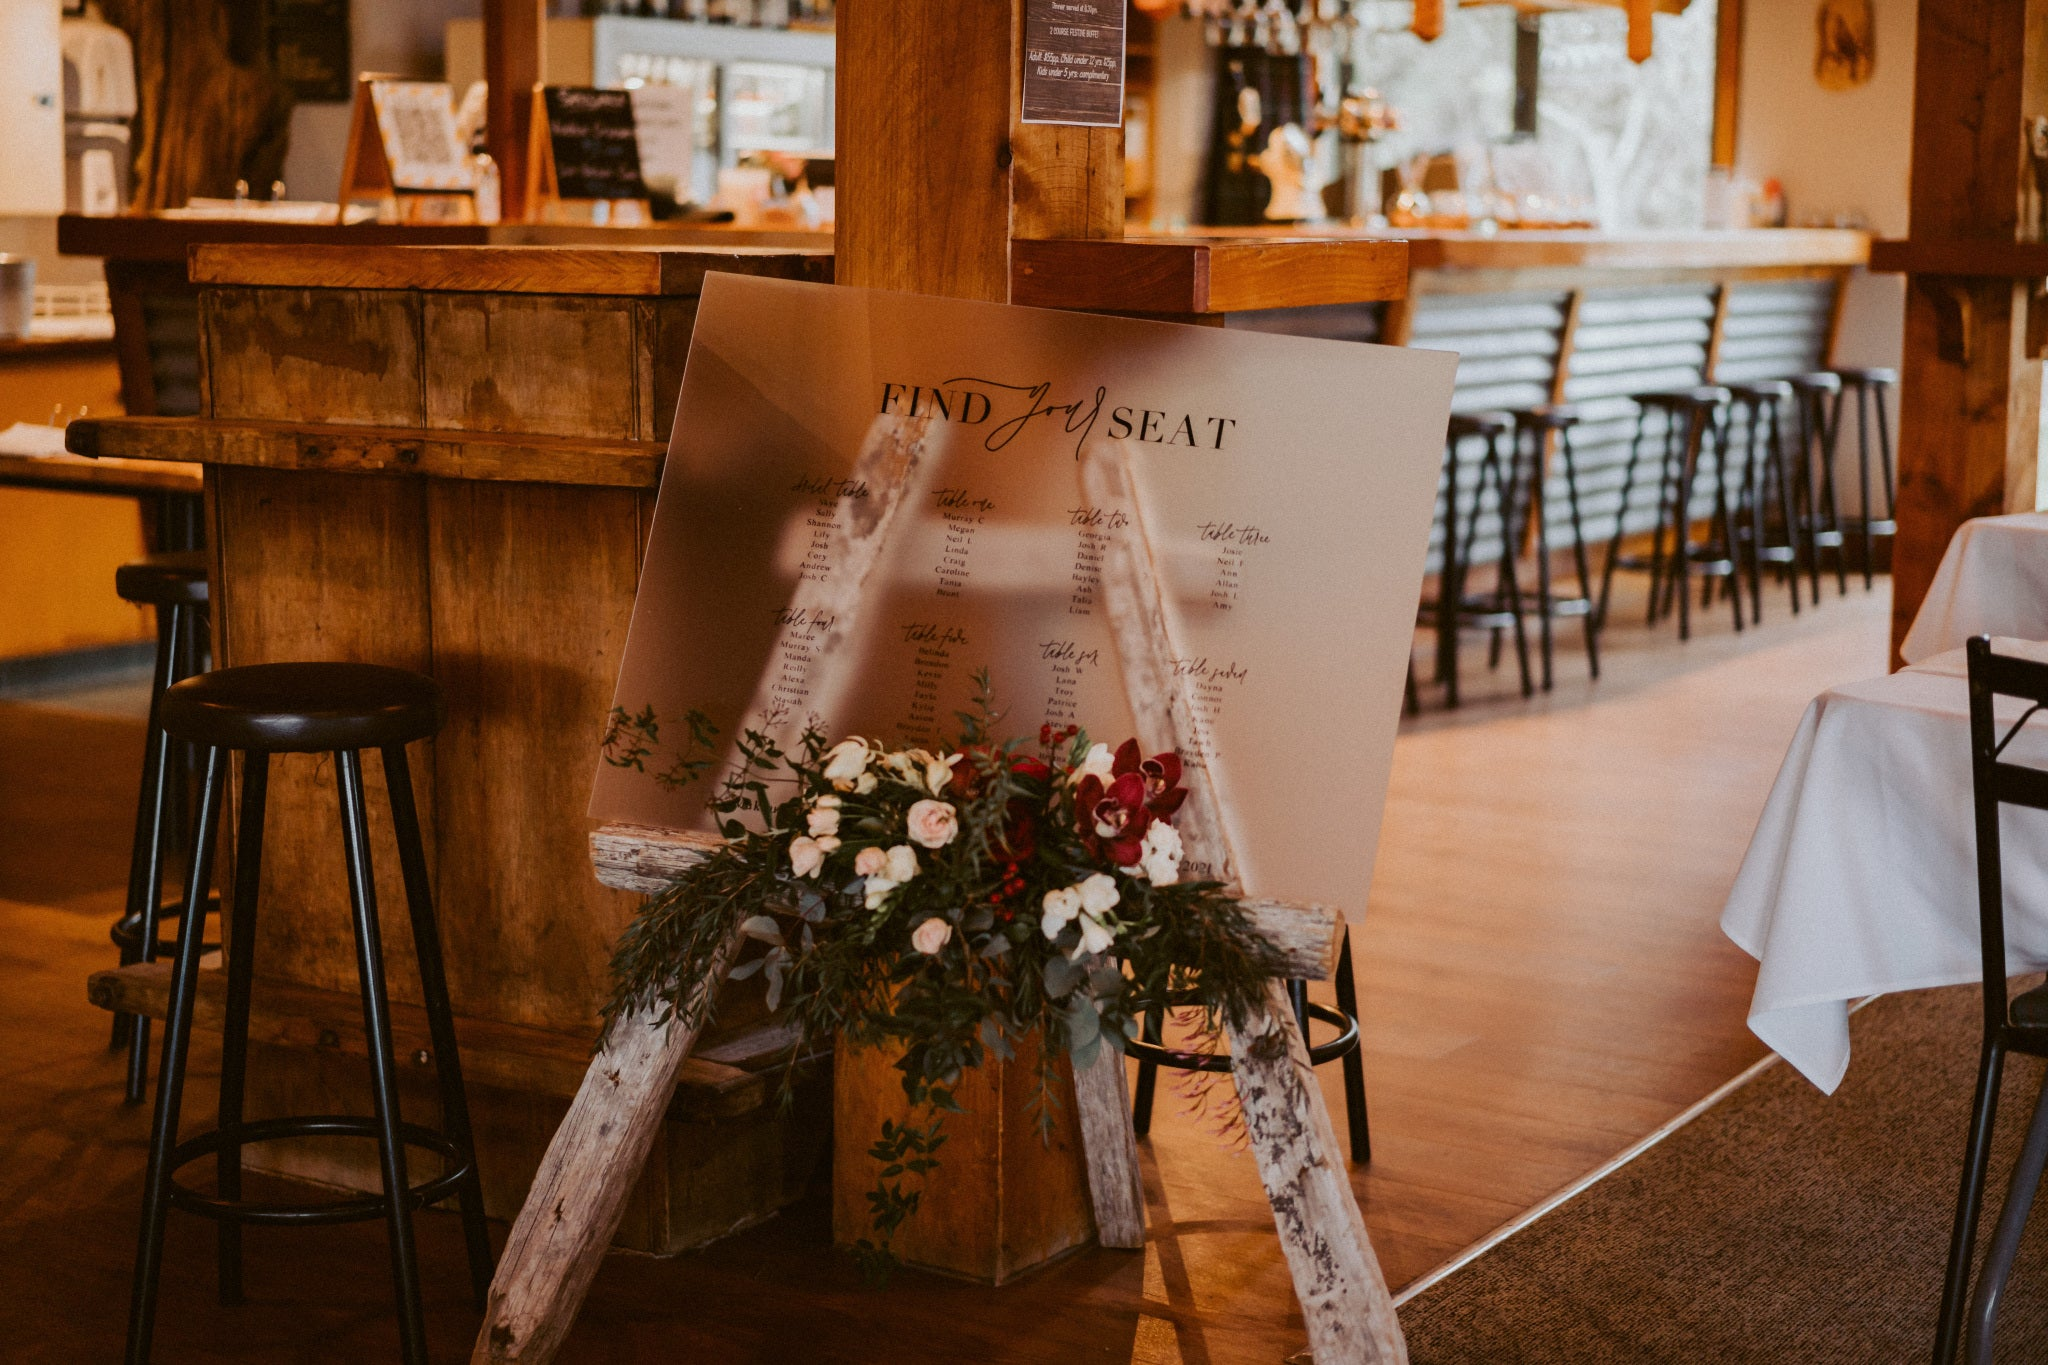 Lily + Josh | Frosted Acrylic Wedding Seating Plan | Custom Signage | The Paper Gazelle Wedding Feature